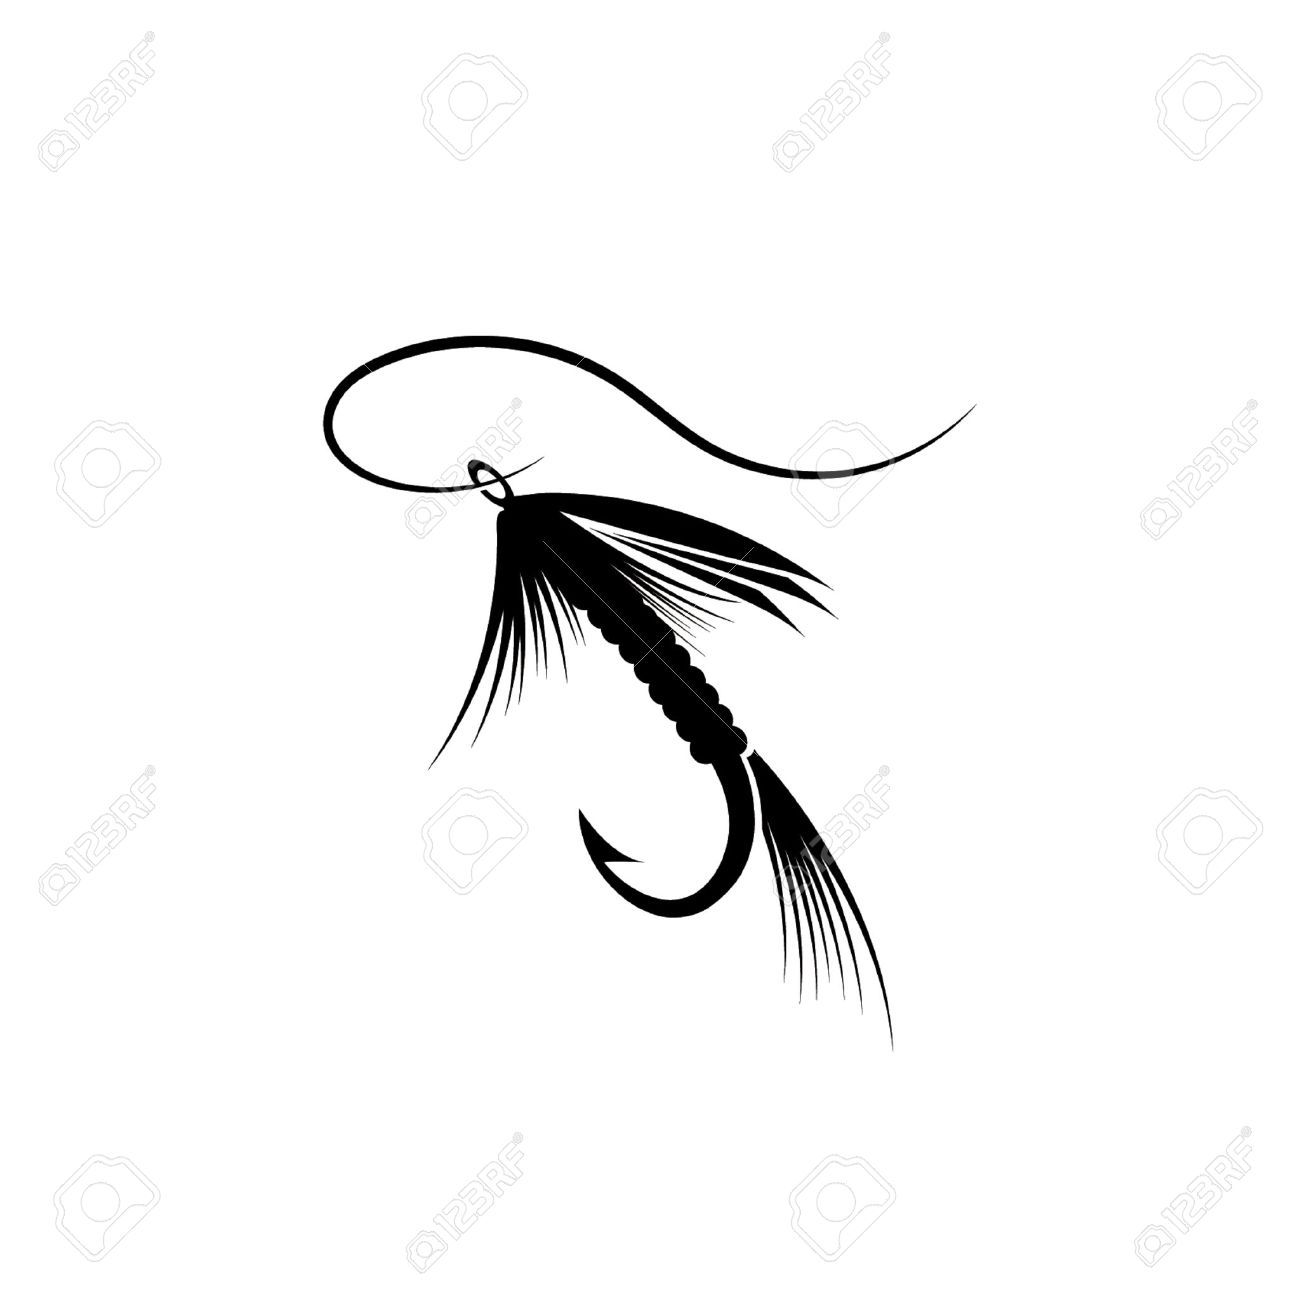 Fly fishing pictures clipart. Portal